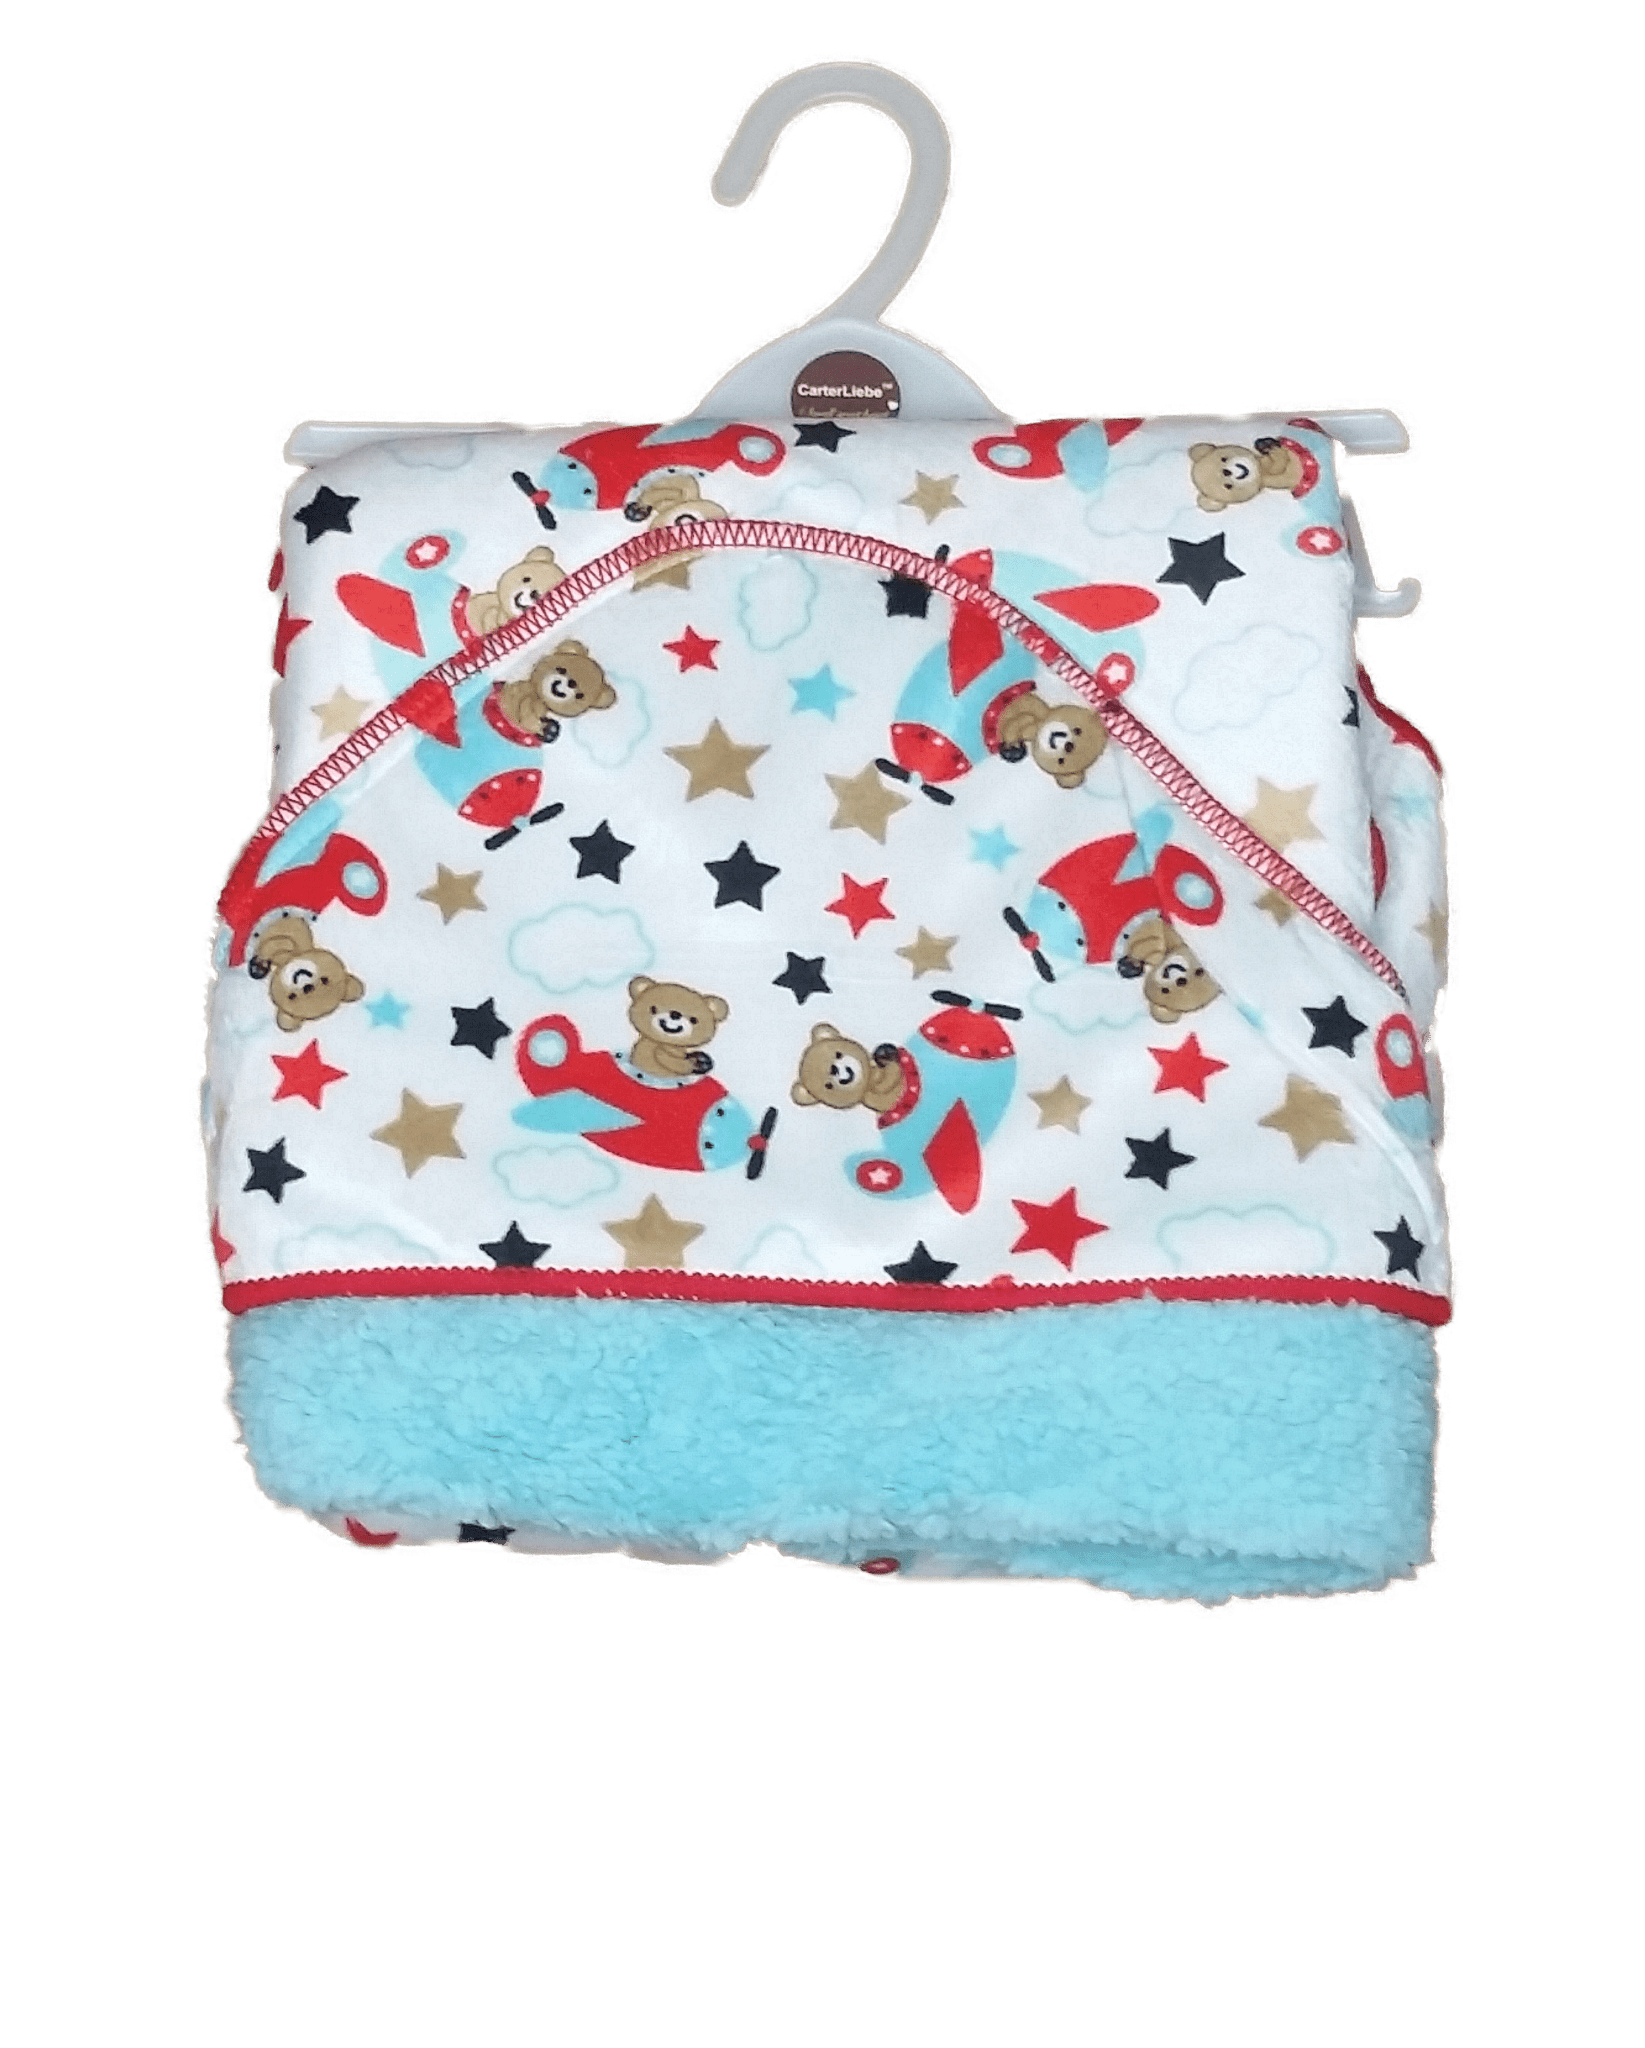 CarterLiebe Baby Blanket / Wrapping Shawl